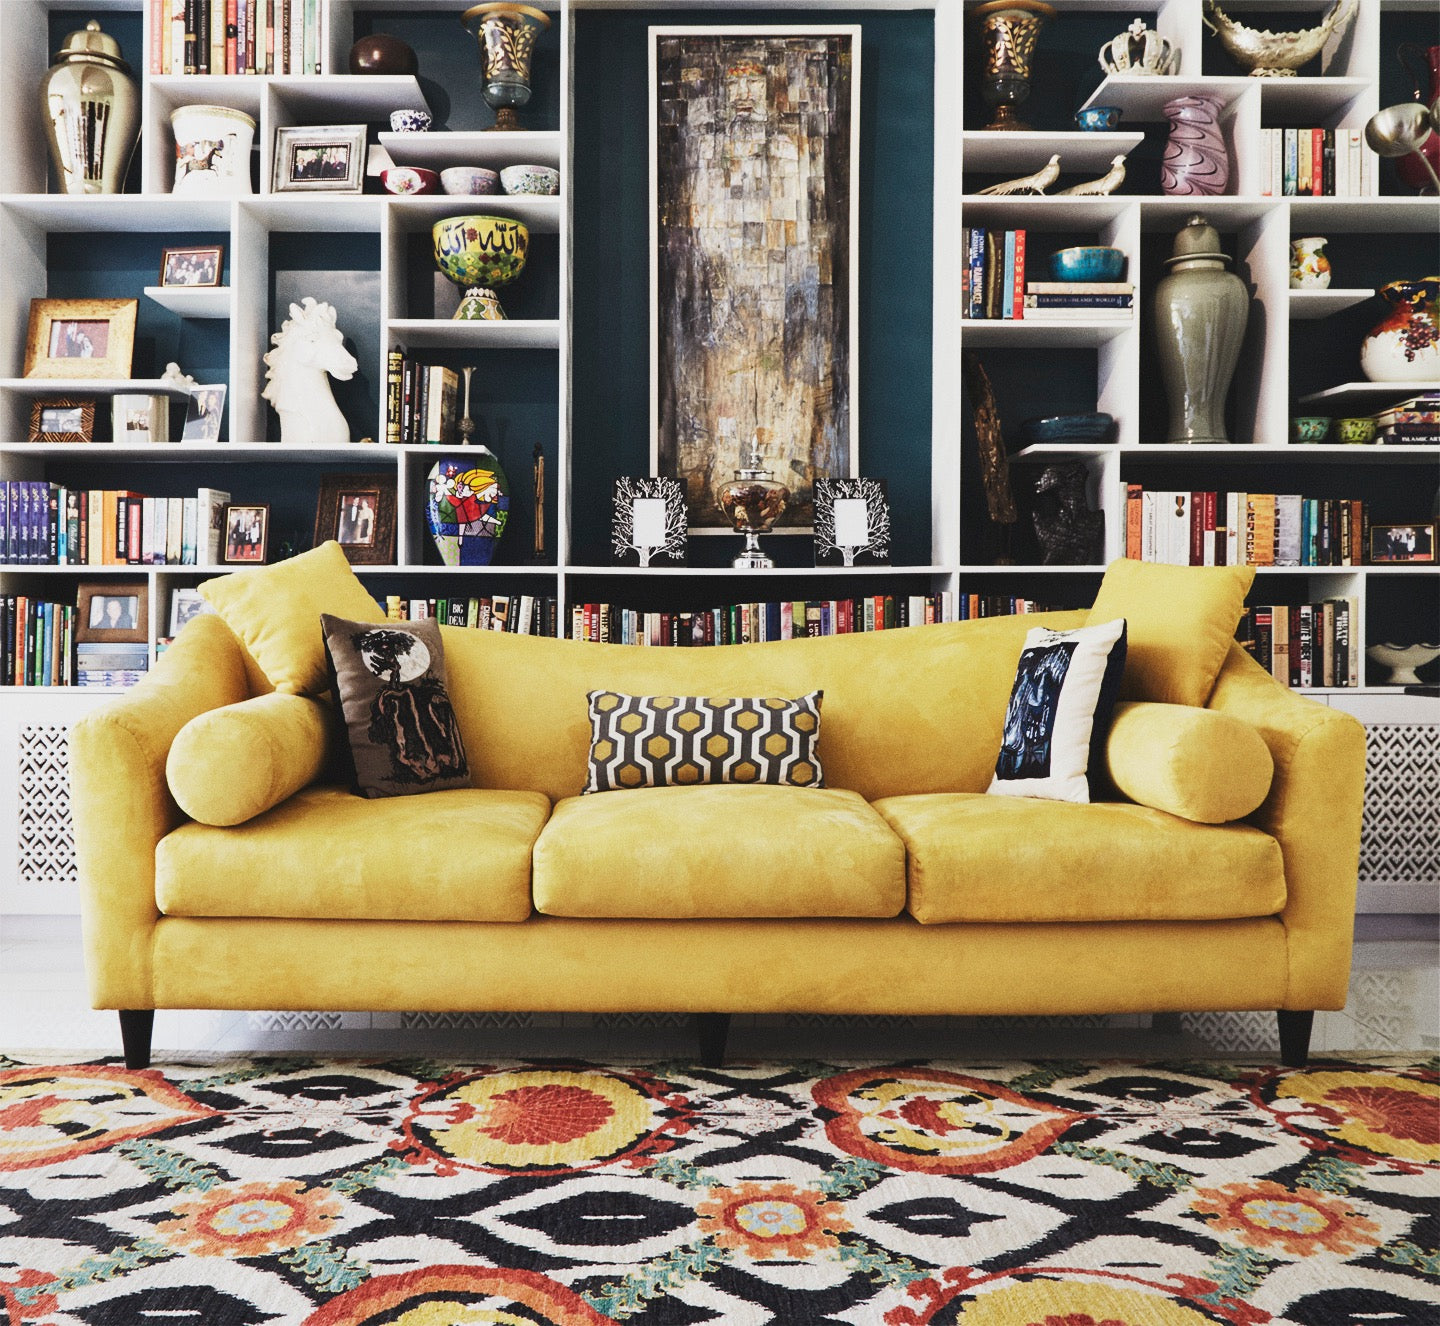 Bold patterned rug brings a living room together beautifully.